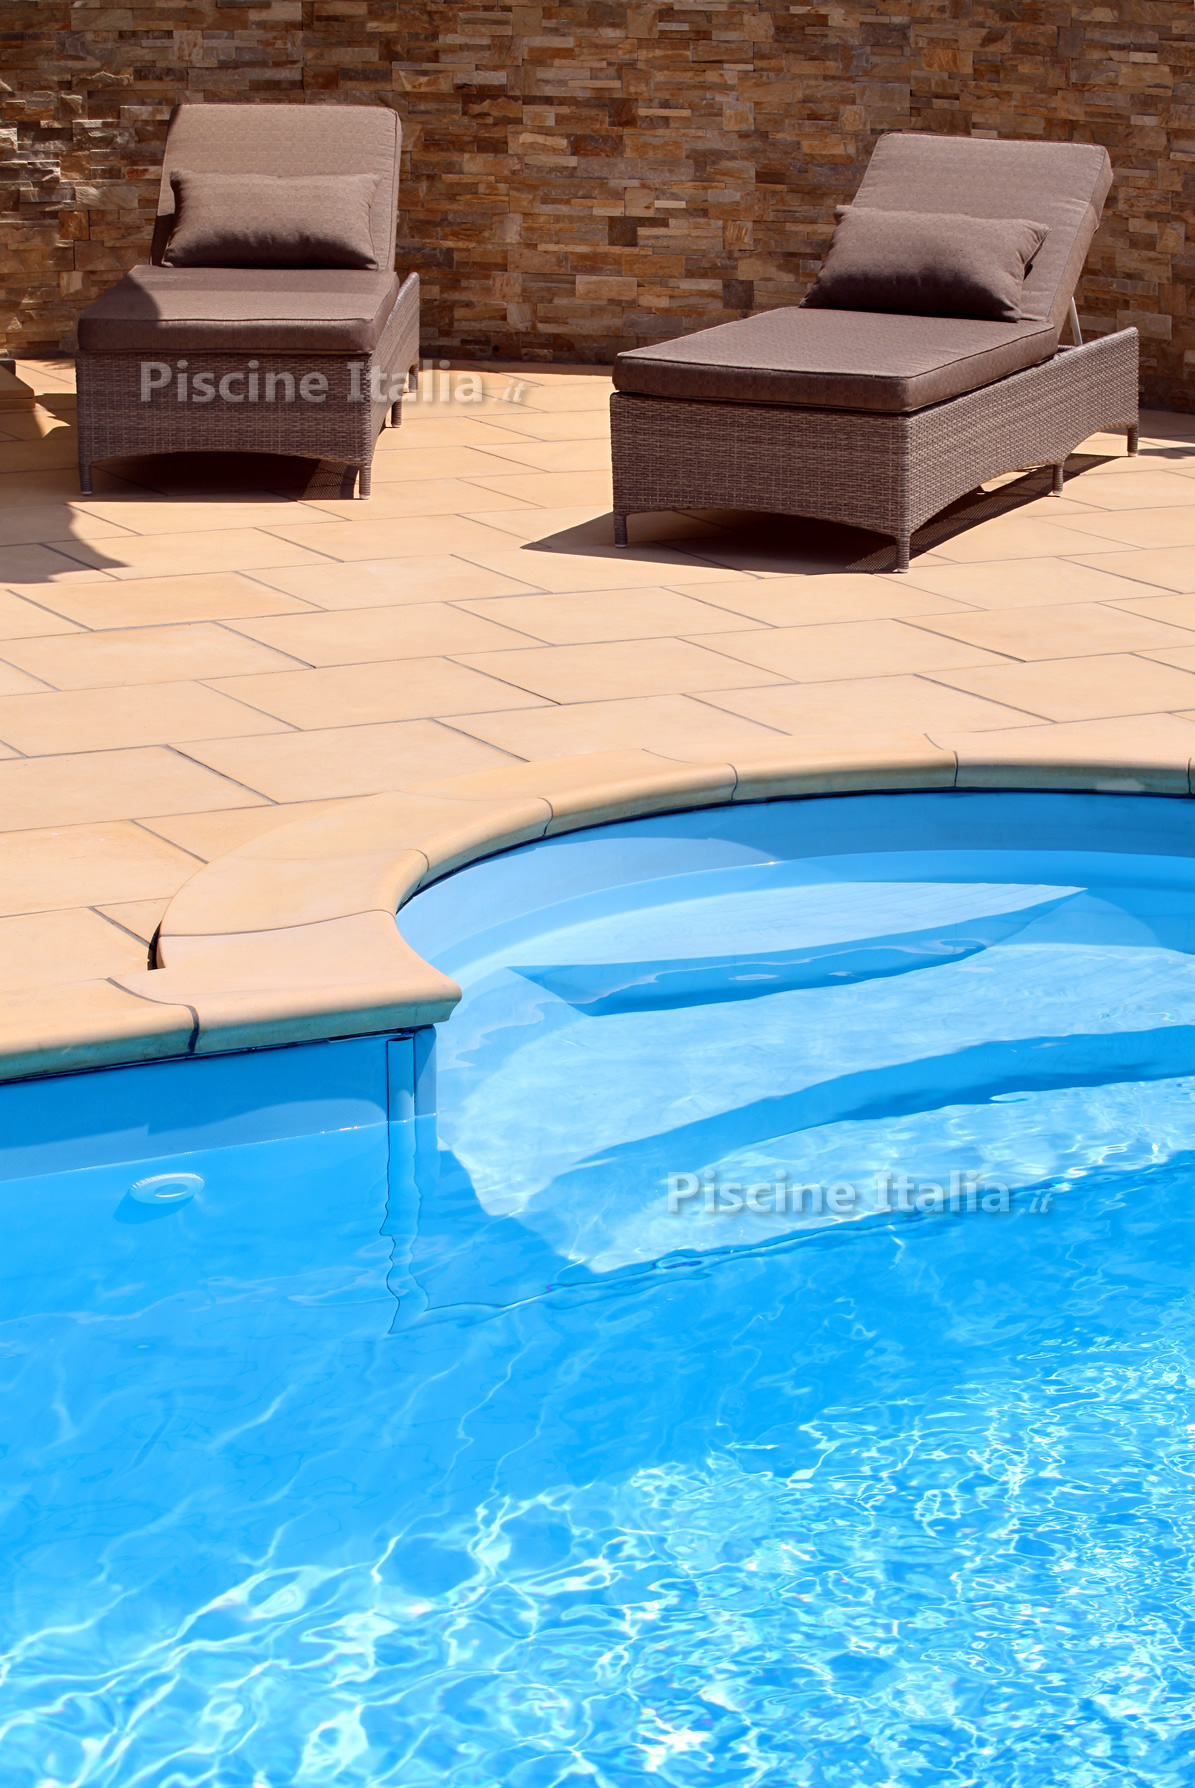 Piscine interrate in kit Futura - Immagine 8